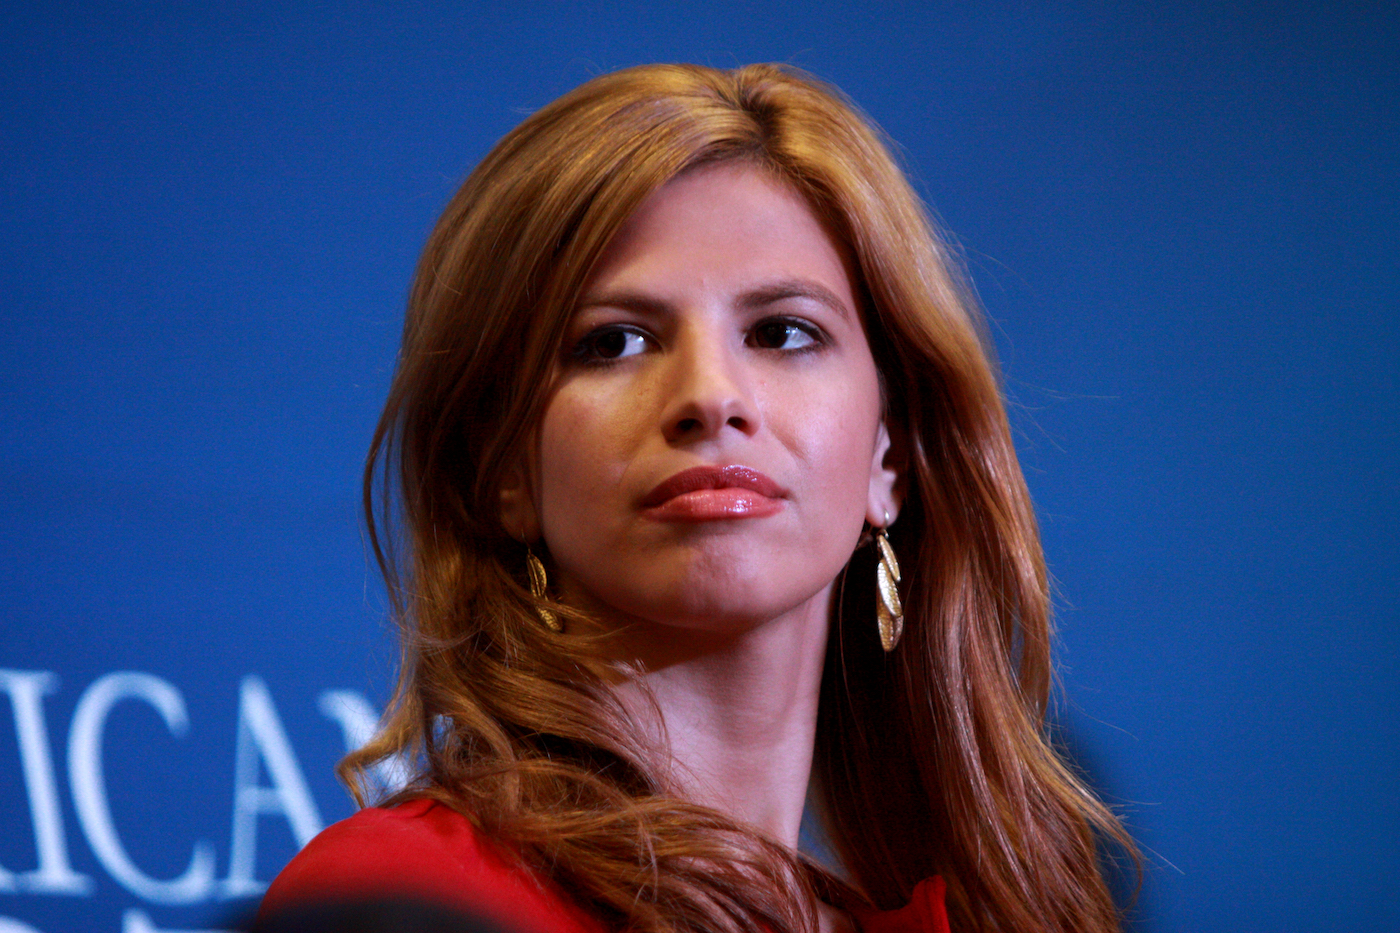 Michelle Fields Receives Graphic Death Threats [VIDEO]